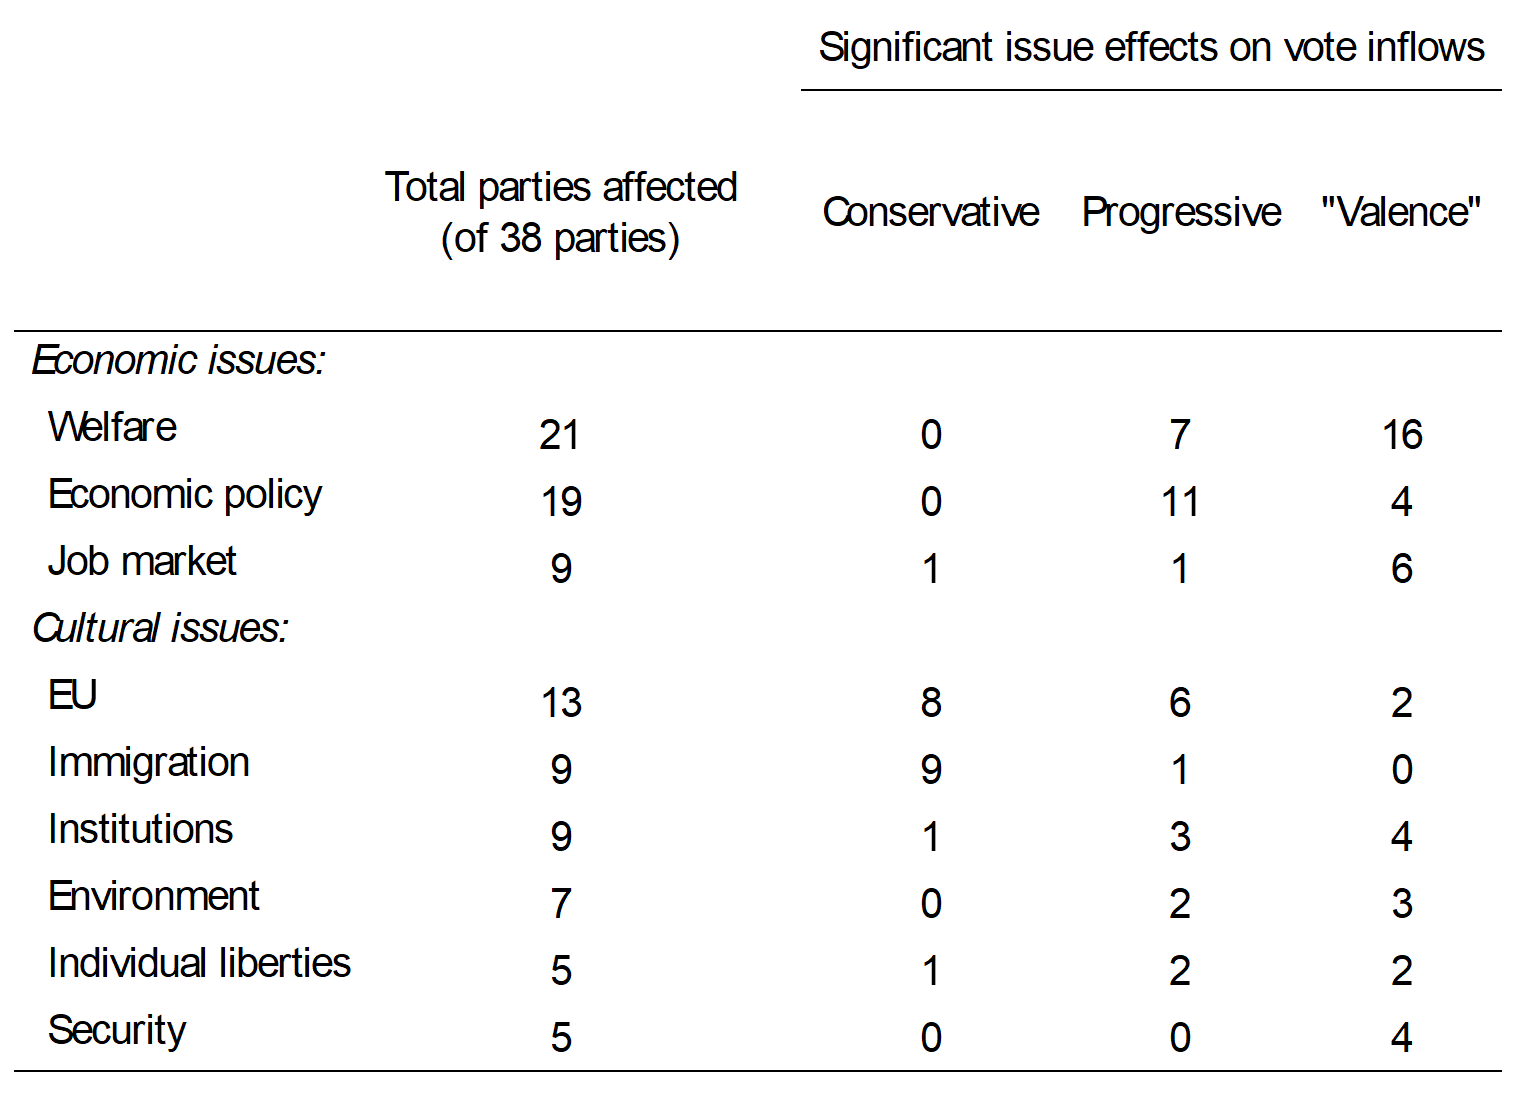 Summary of significant issue effects on vote inflows for parties and candidates